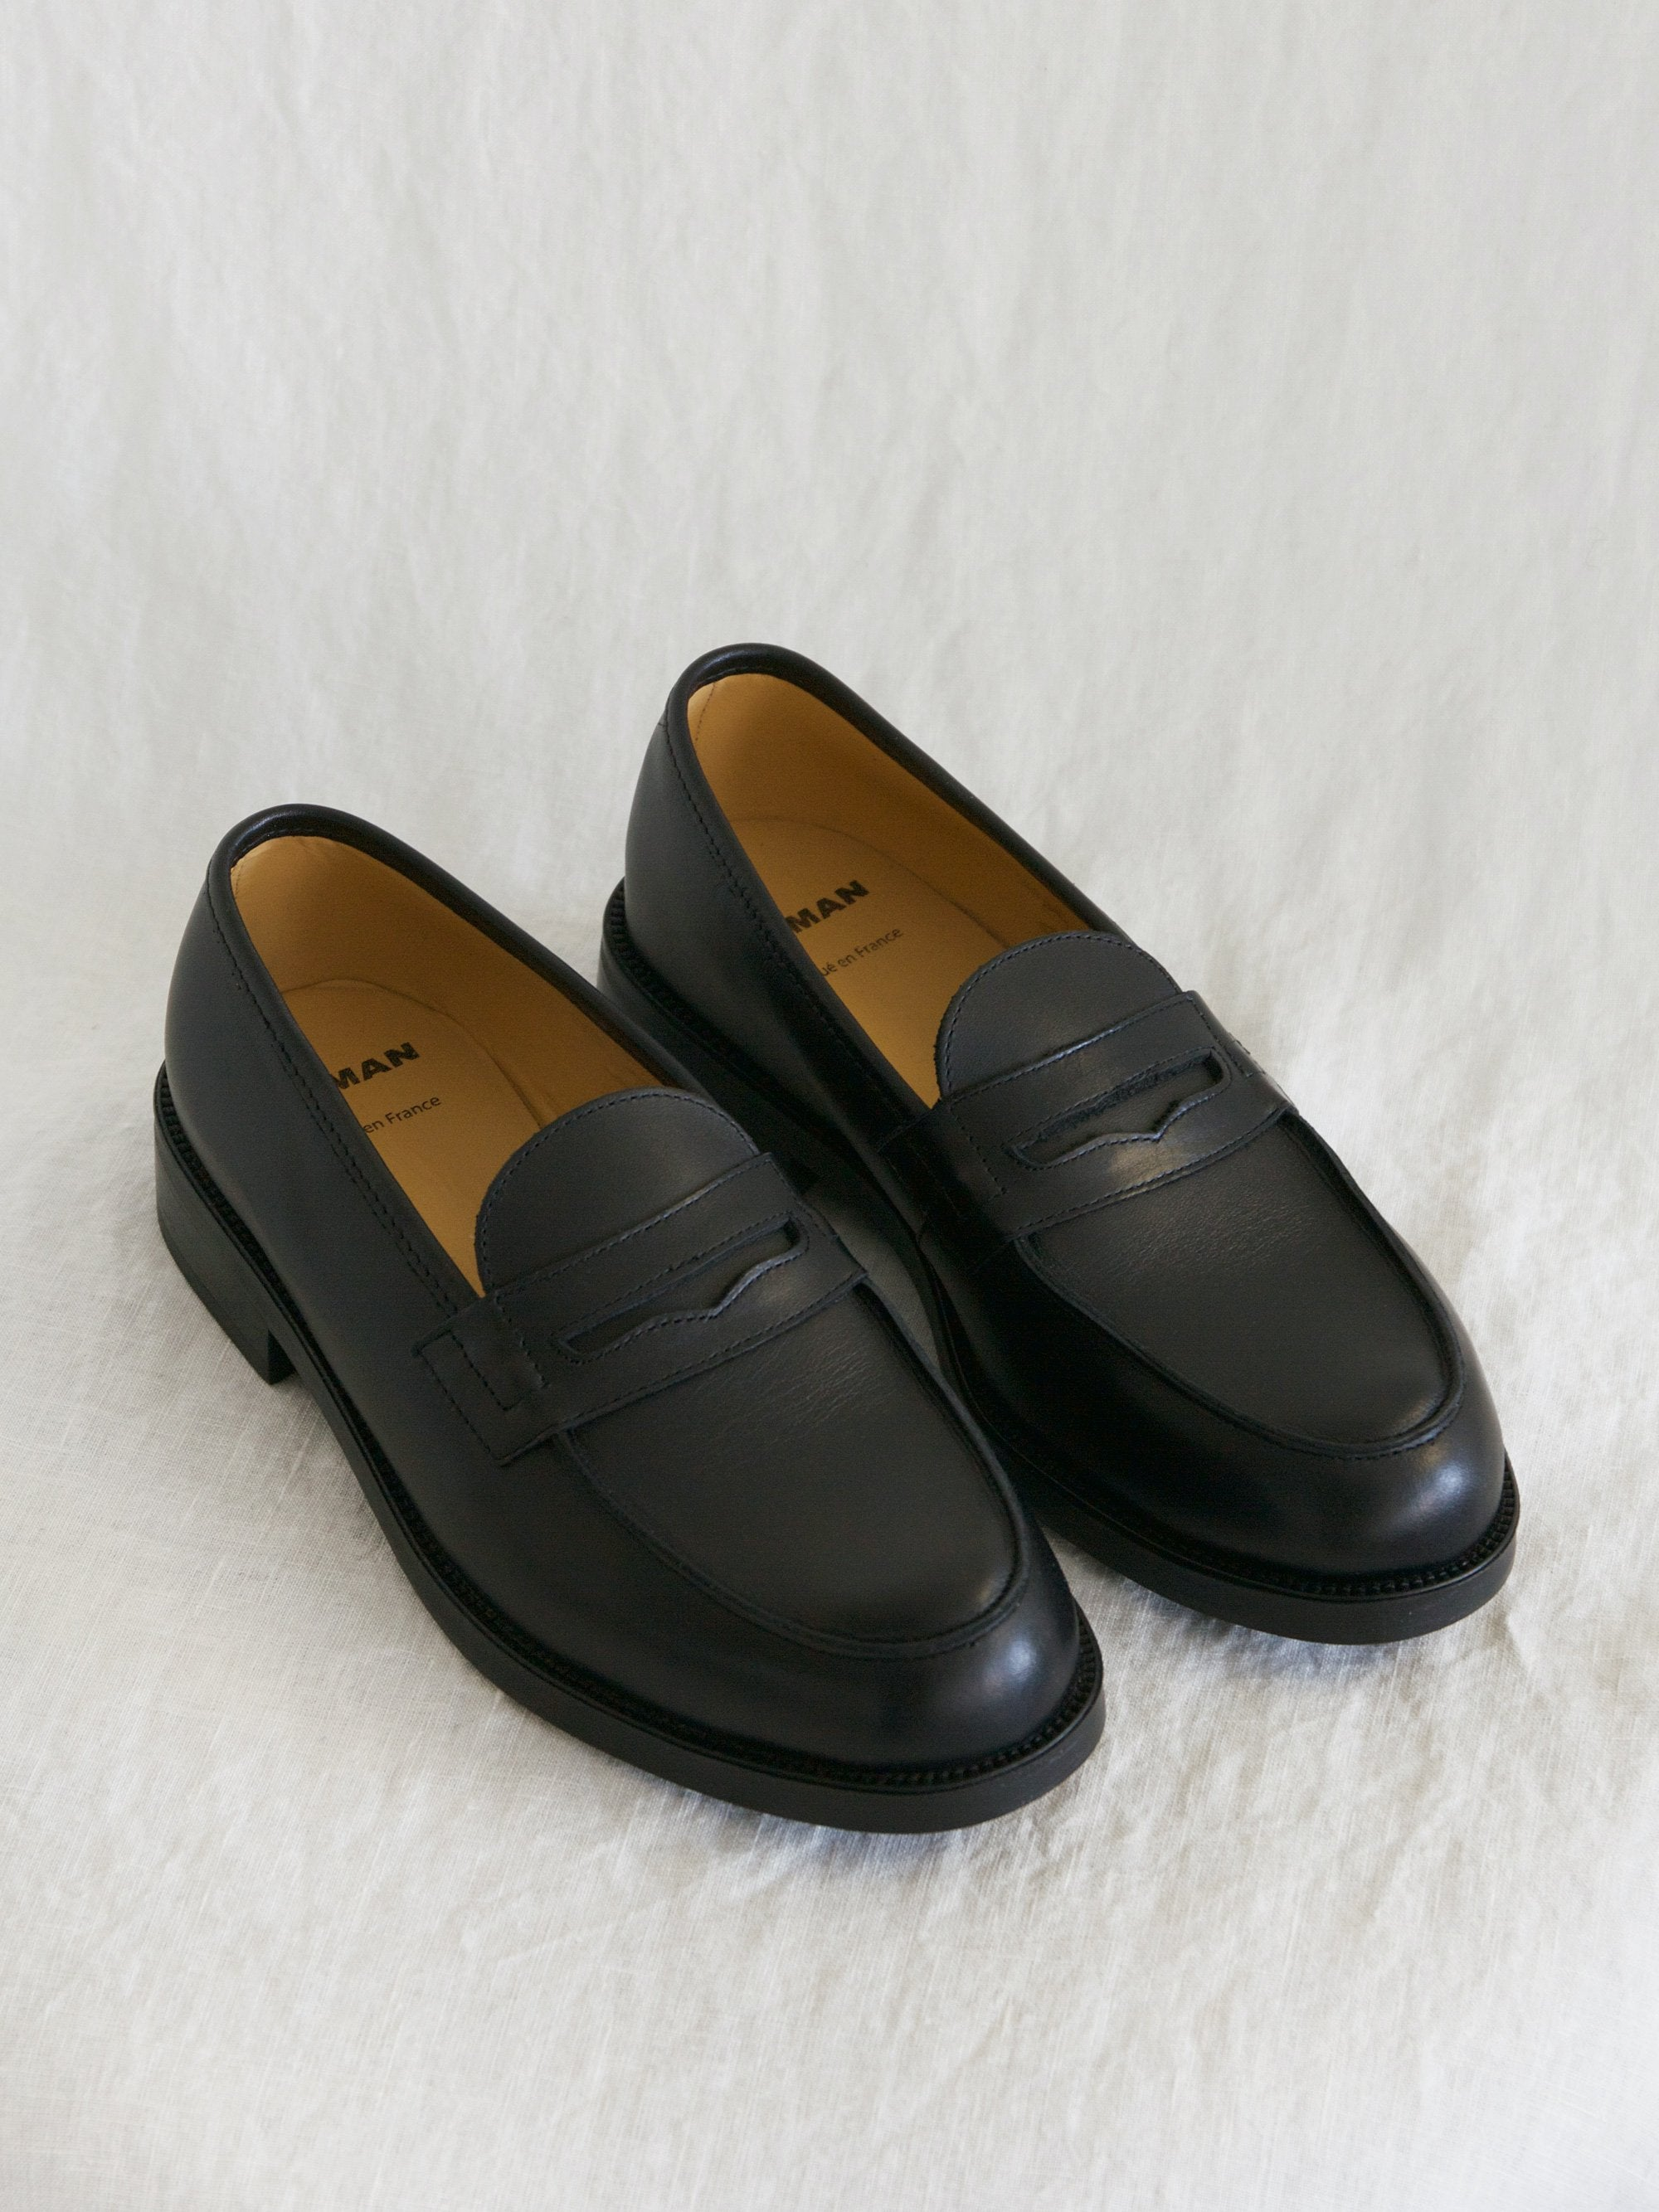 Namu Shop - Kleman Dalior - Noir Men's (re-stocked)